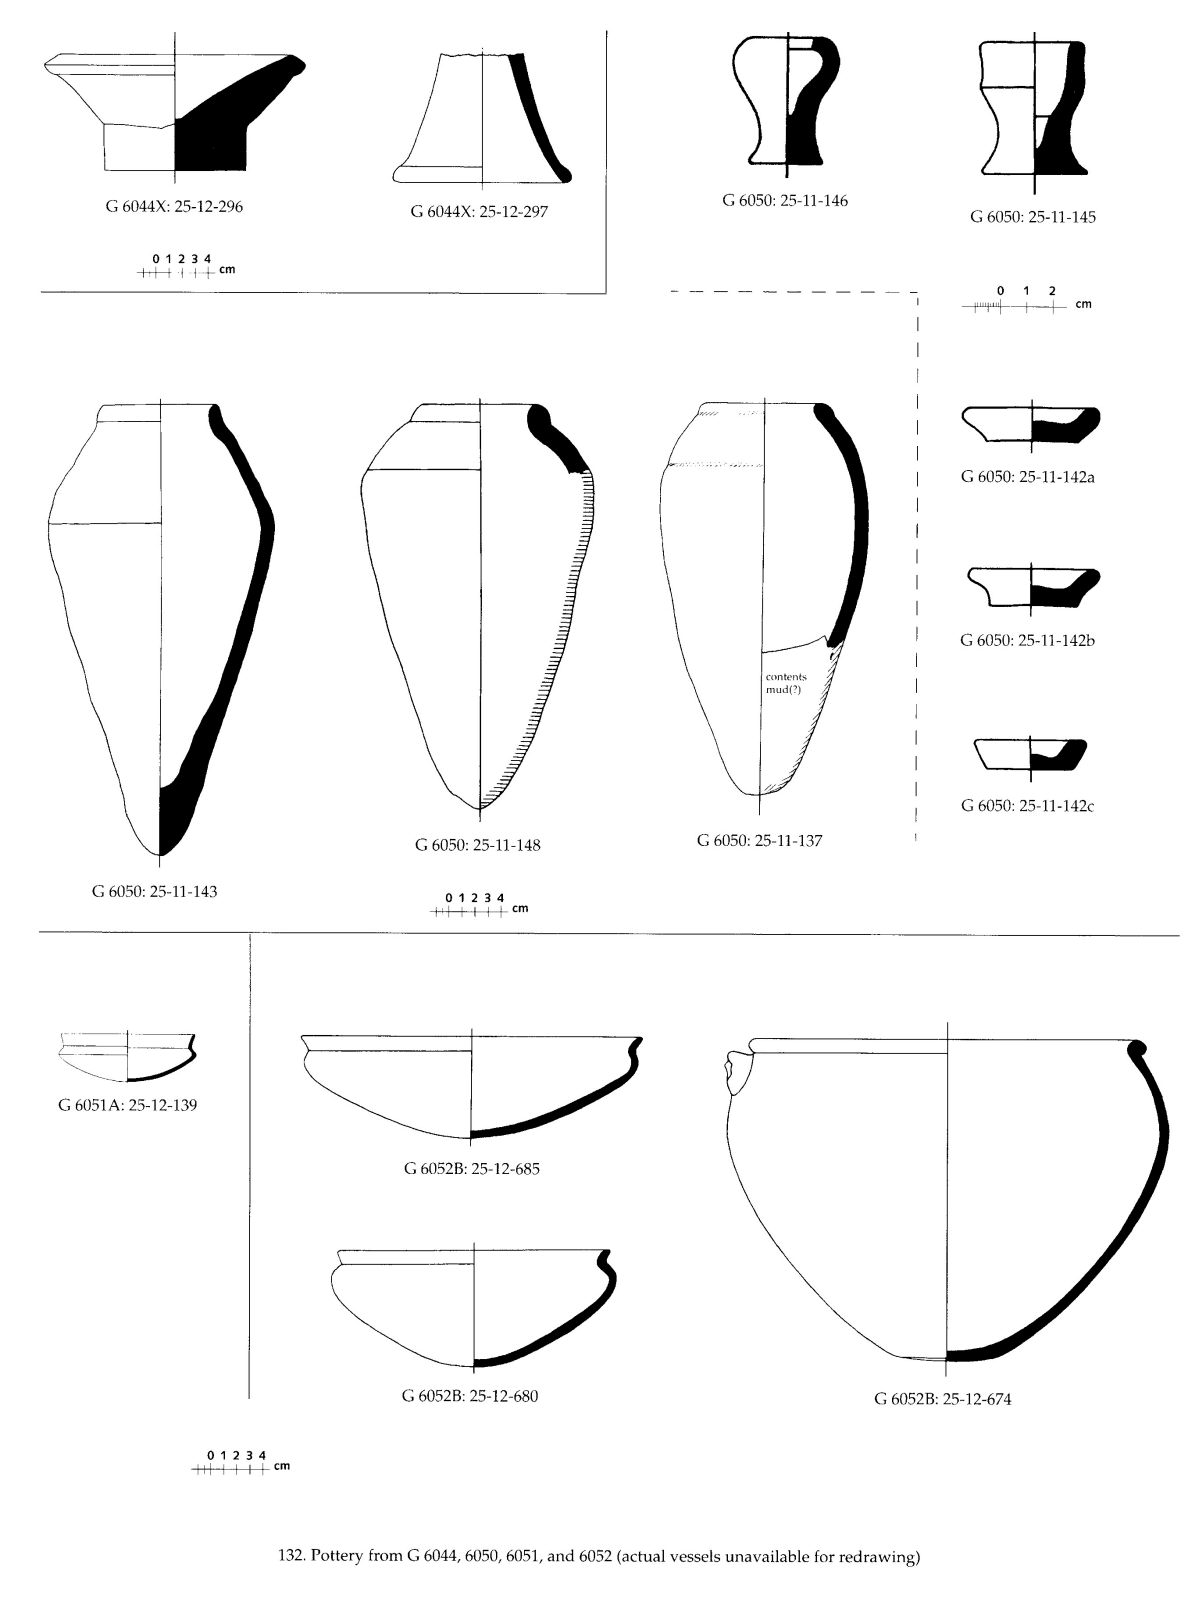 Drawings: Pottery from G 6044, G 6050, G 6051, G 6952